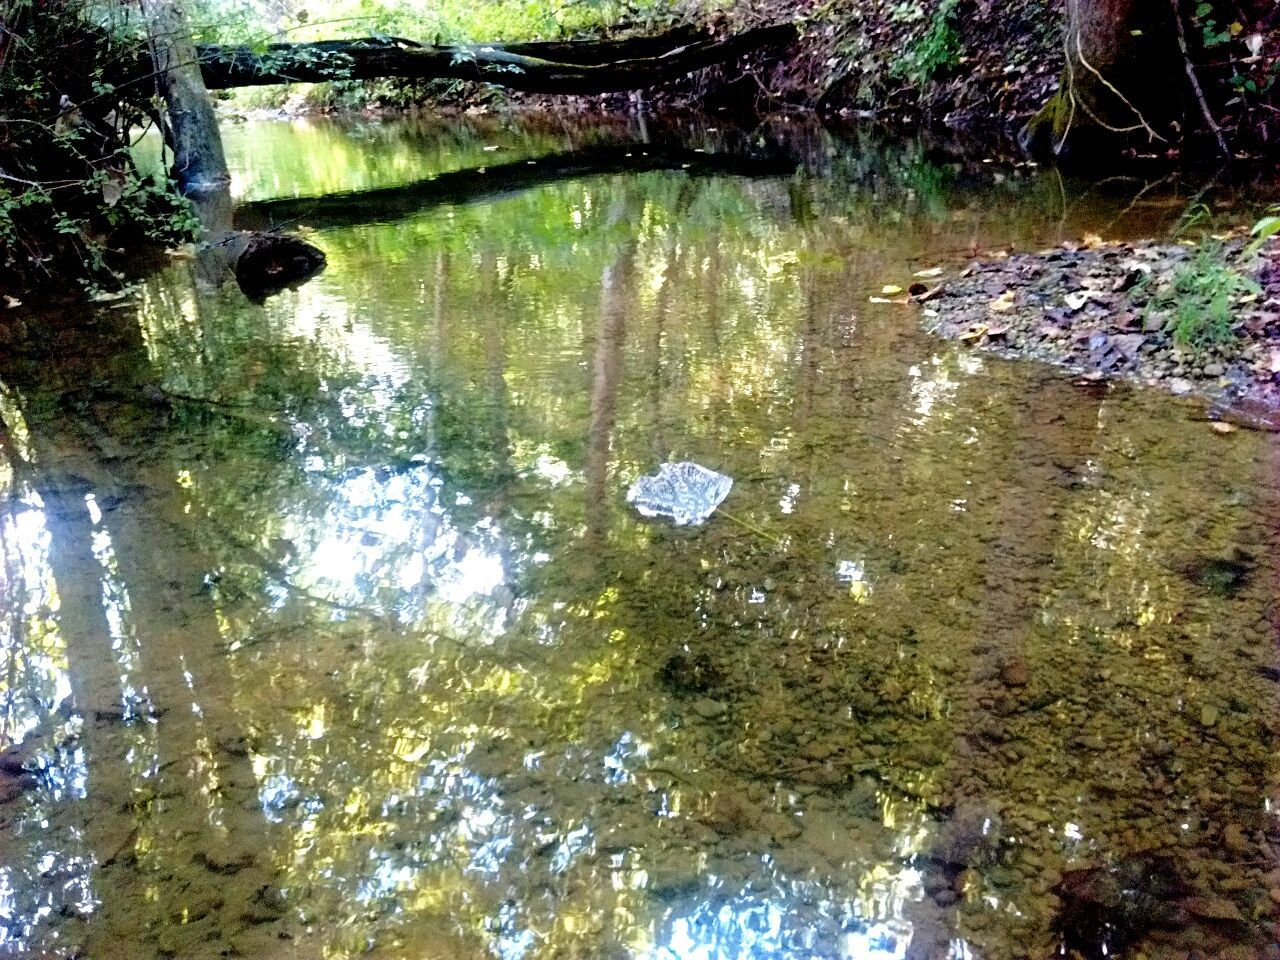 Fresh on EyeEm Creekside Trail Creek Creekside Water Reflection Tranquility Tranquil Scene Scenics Nature High Angle View Beauty In Nature Calm Growth Stream Green Color Non-urban Scene Waterfront Day Outdoors Majestic Standing Water No People Remote